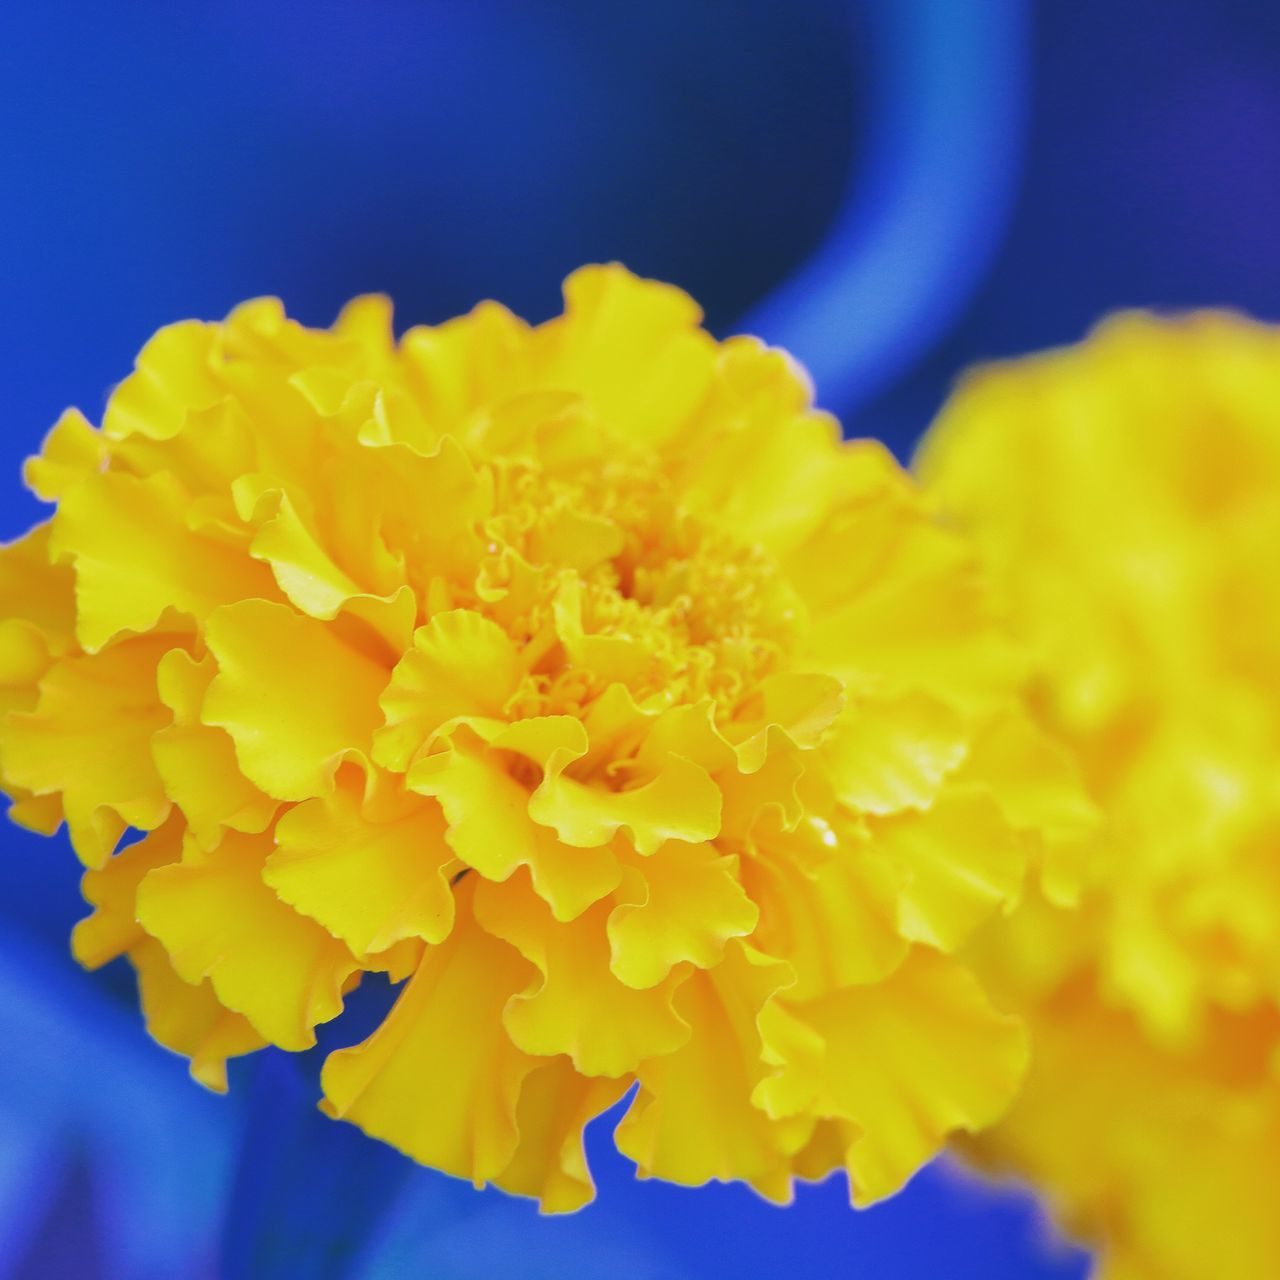 flower, yellow, fragility, beauty in nature, petal, nature, freshness, close-up, flower head, no people, vibrant color, outdoors, growth, blue, plant, day, blooming